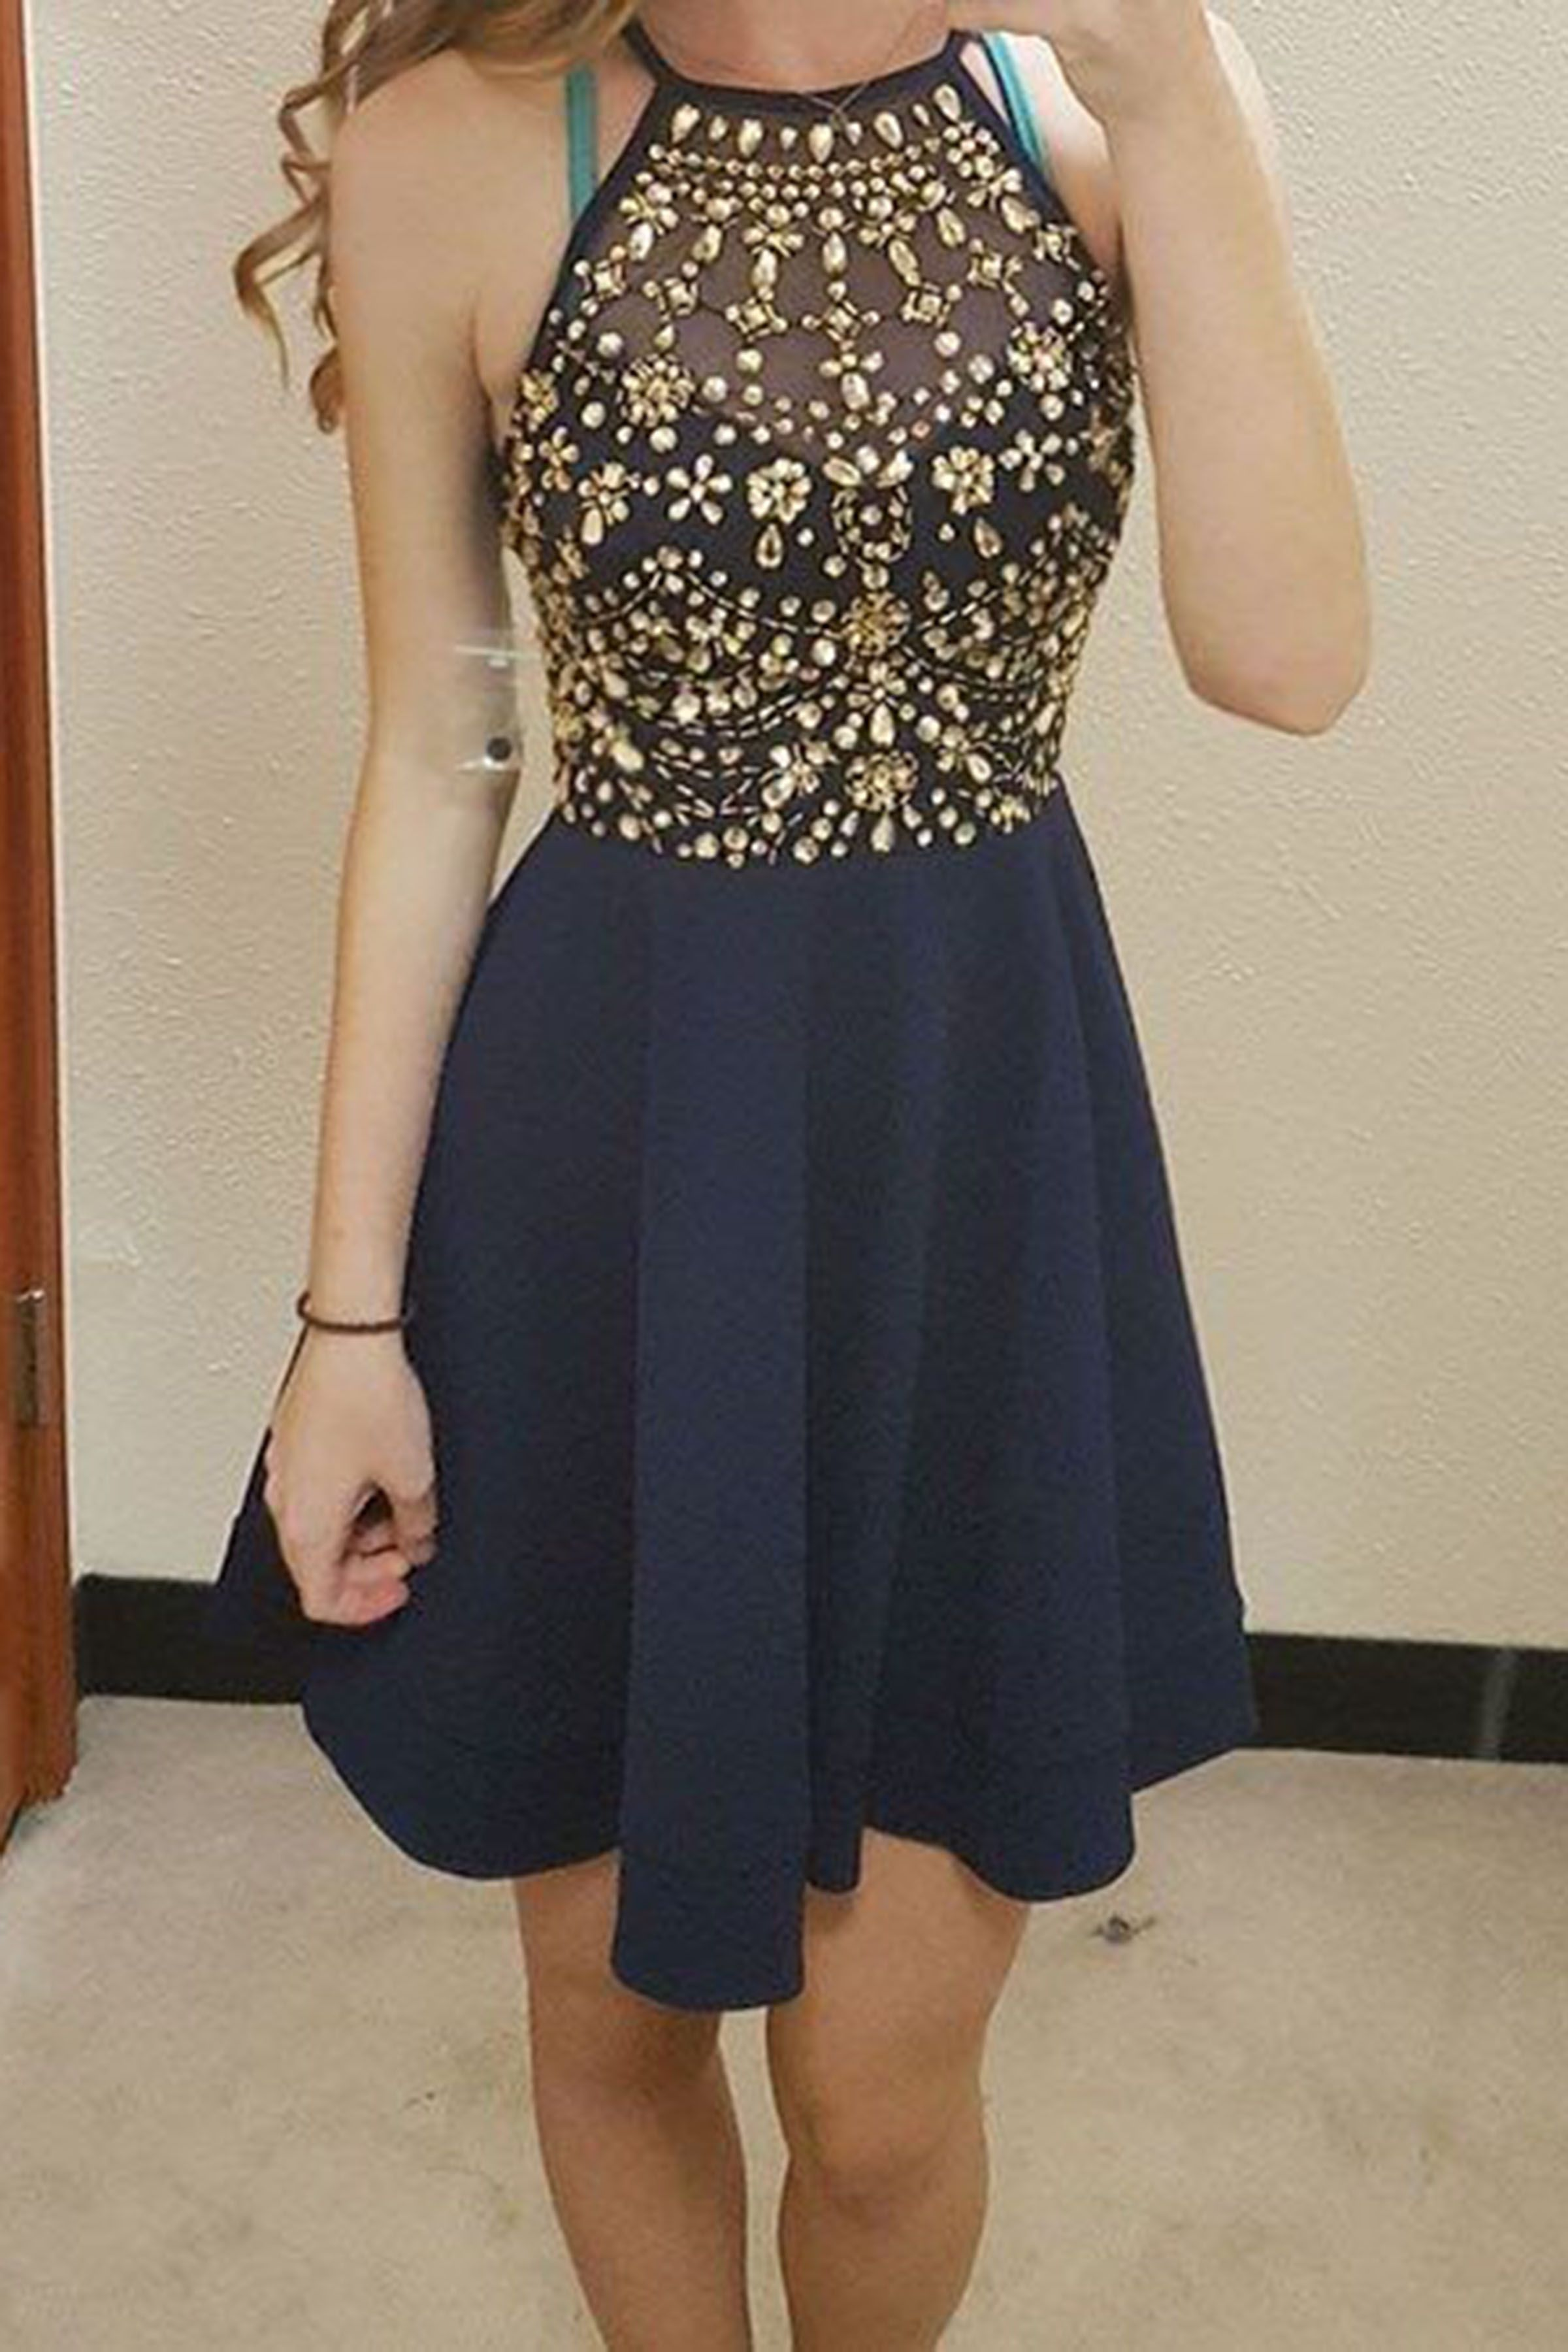 Elegant Short Prom Dresses for Girls